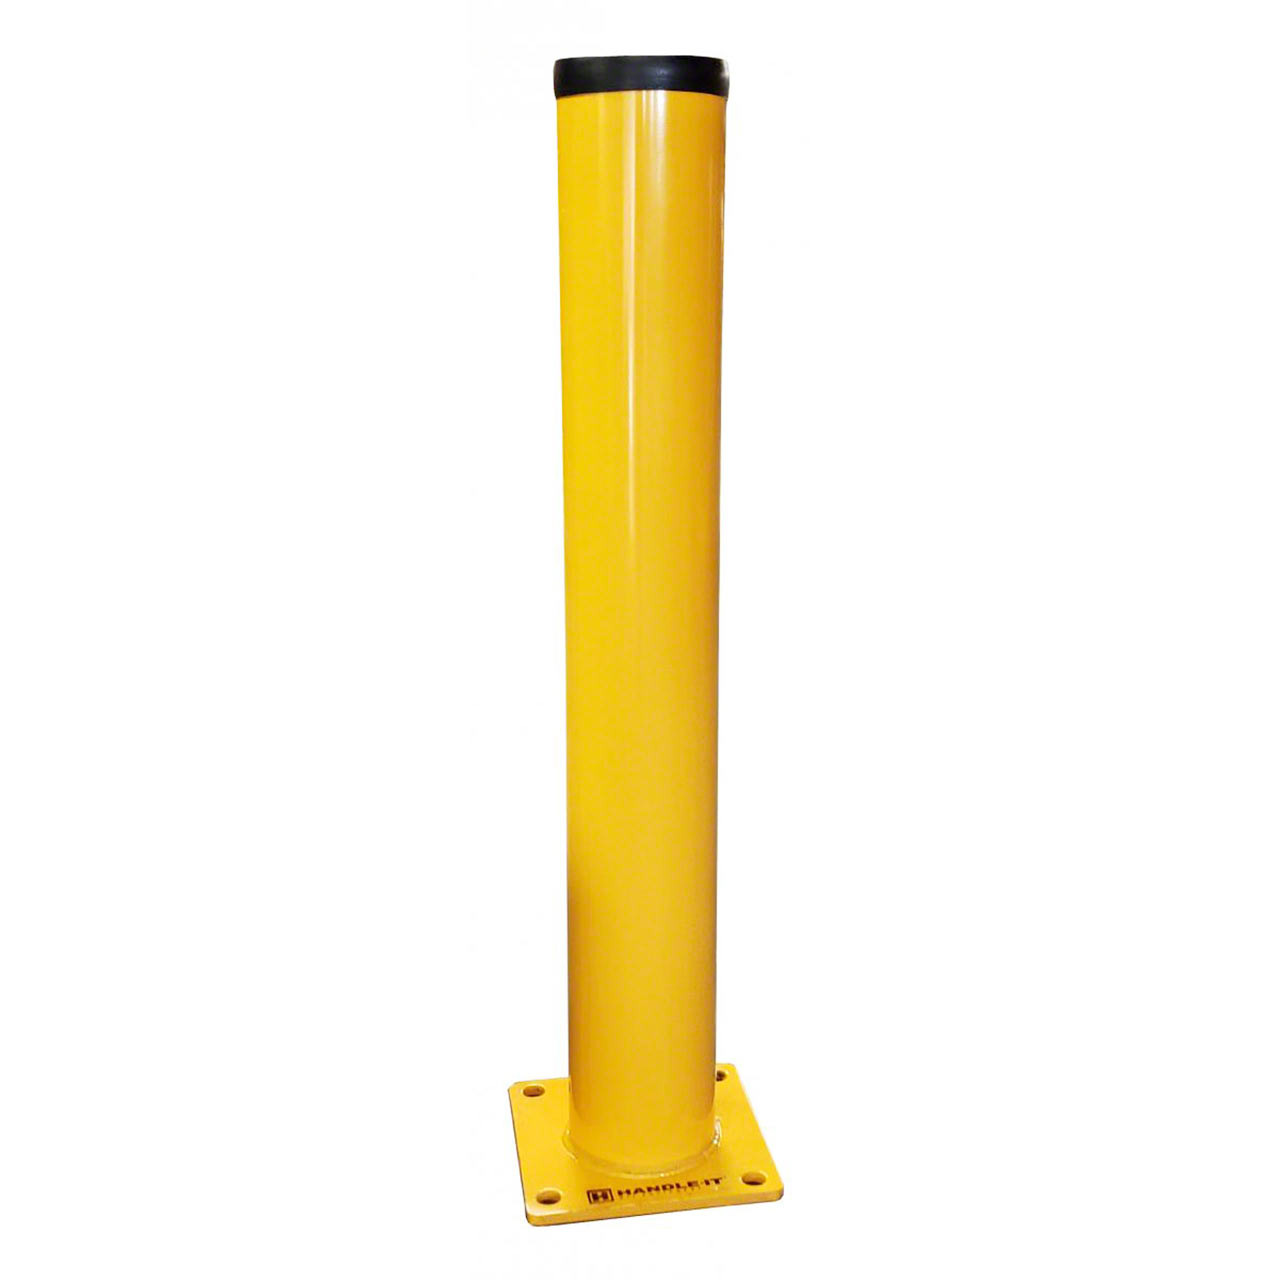 Steel bollards provide strong impact protection from vehicle traffic